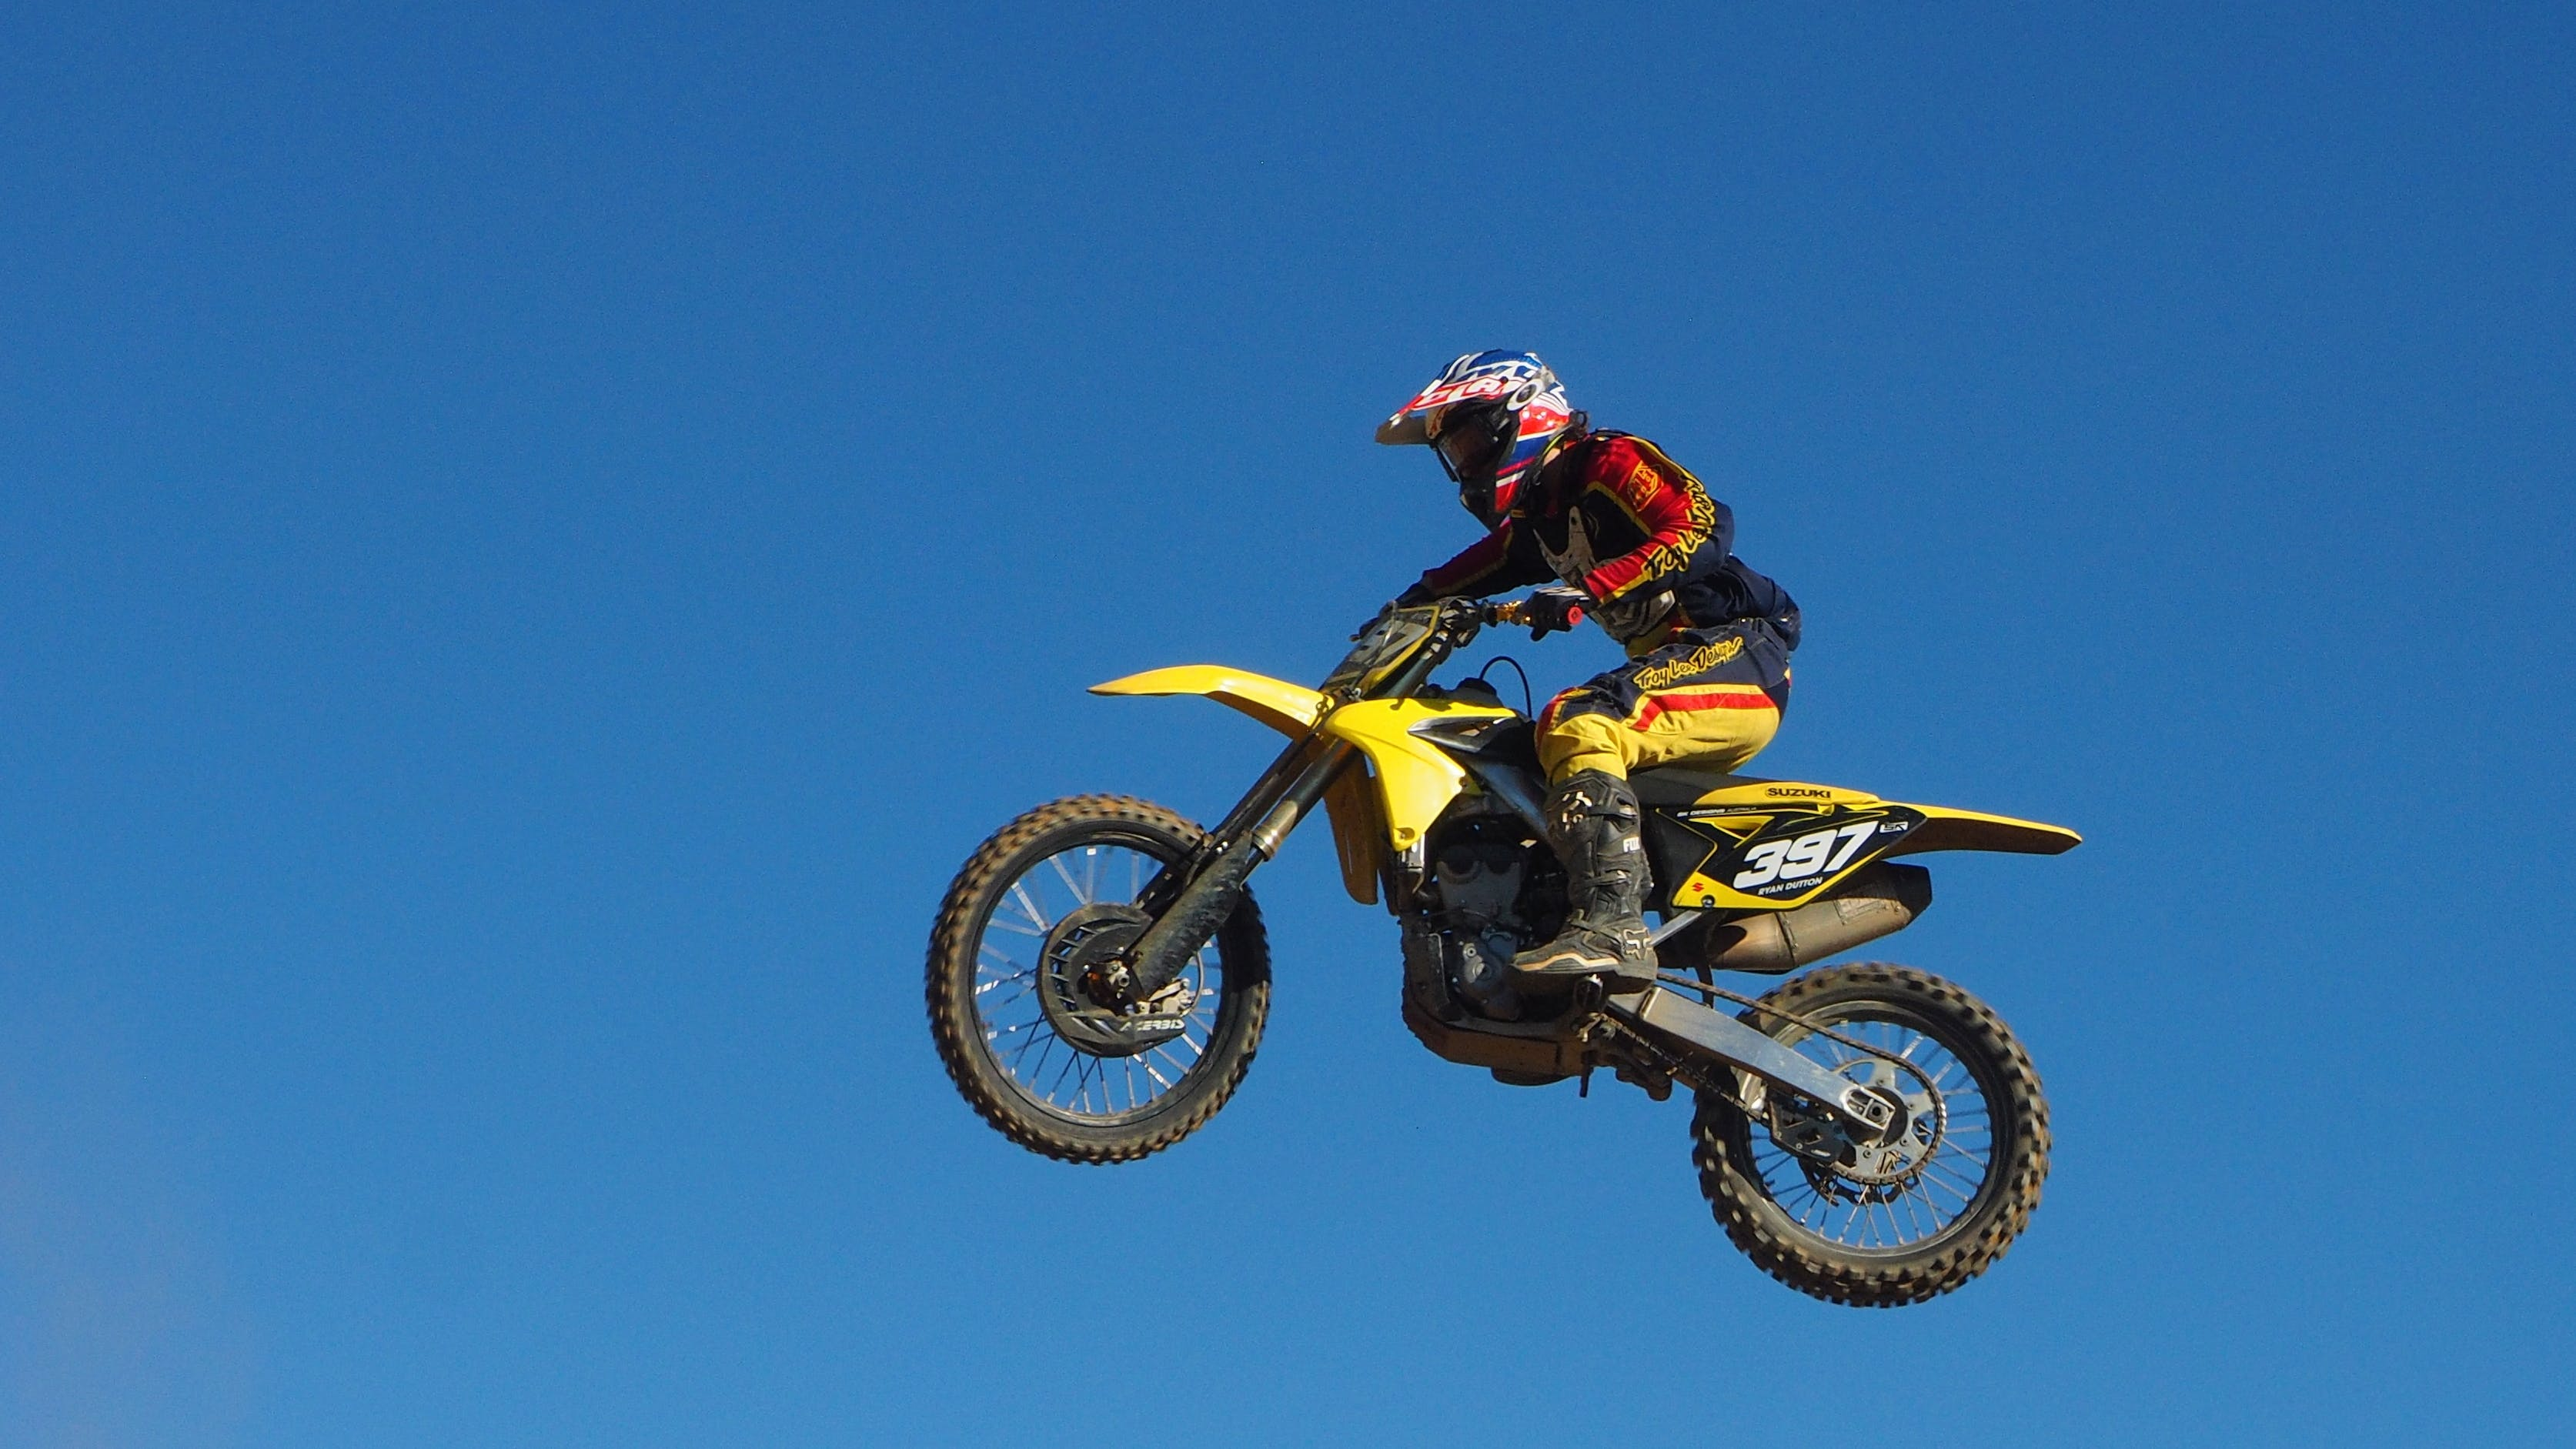 Man Riding Yellow Motocross Dirt Bike